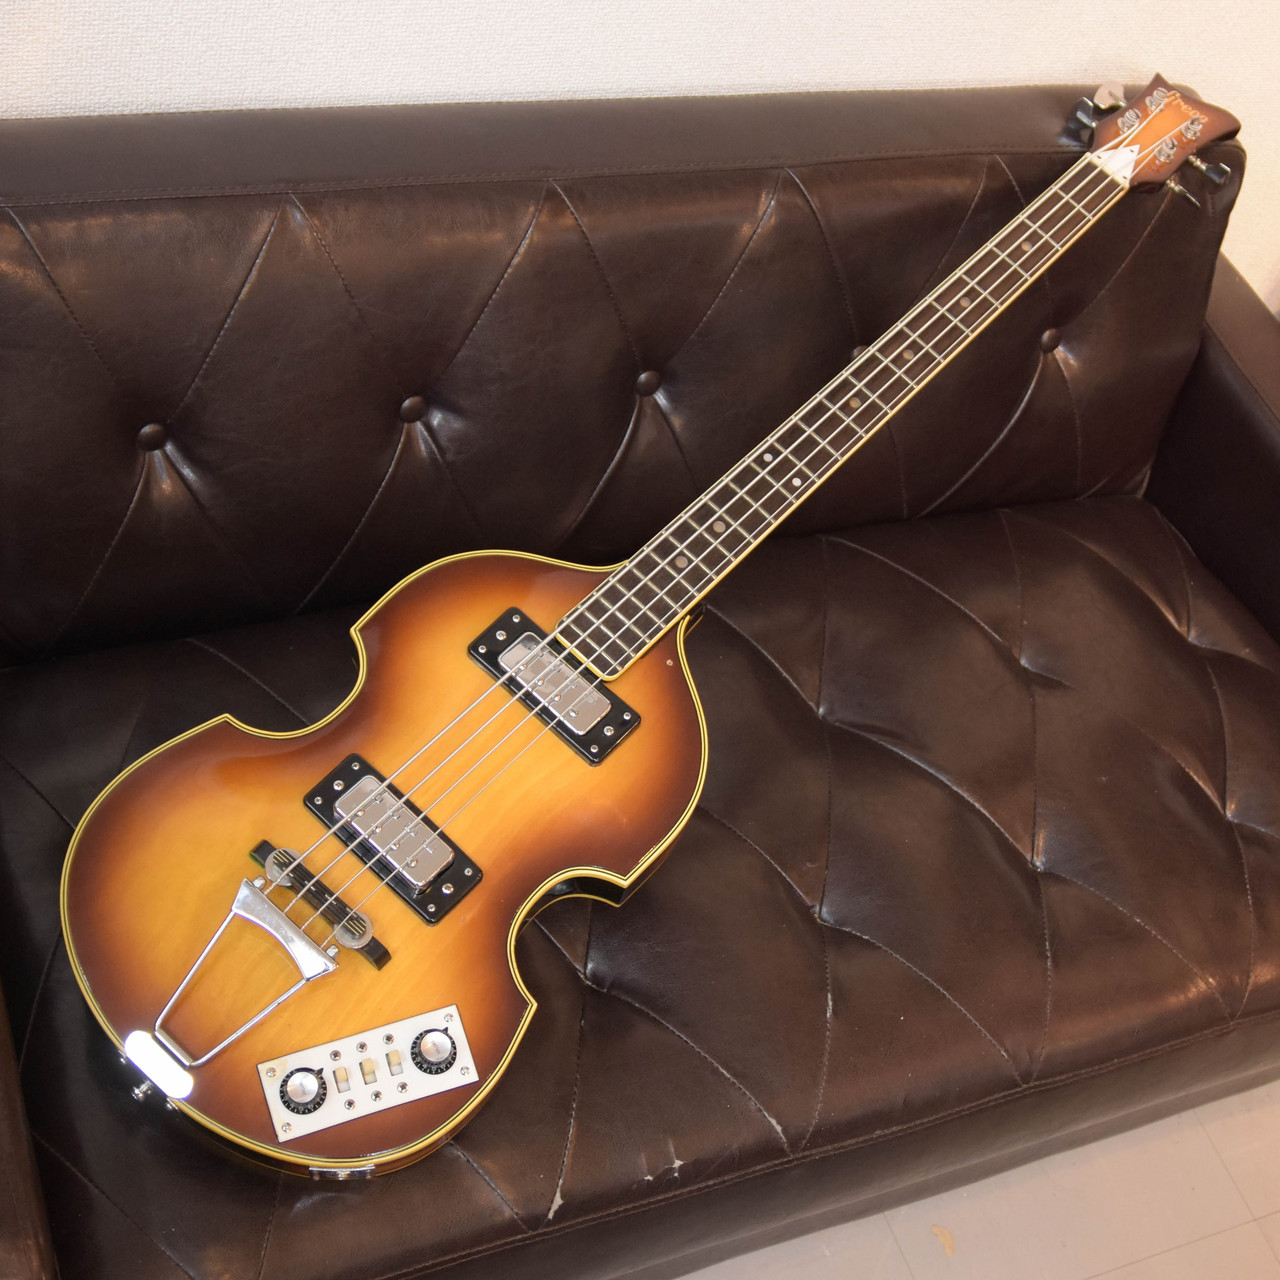 Greco VB-360 Violin Bass